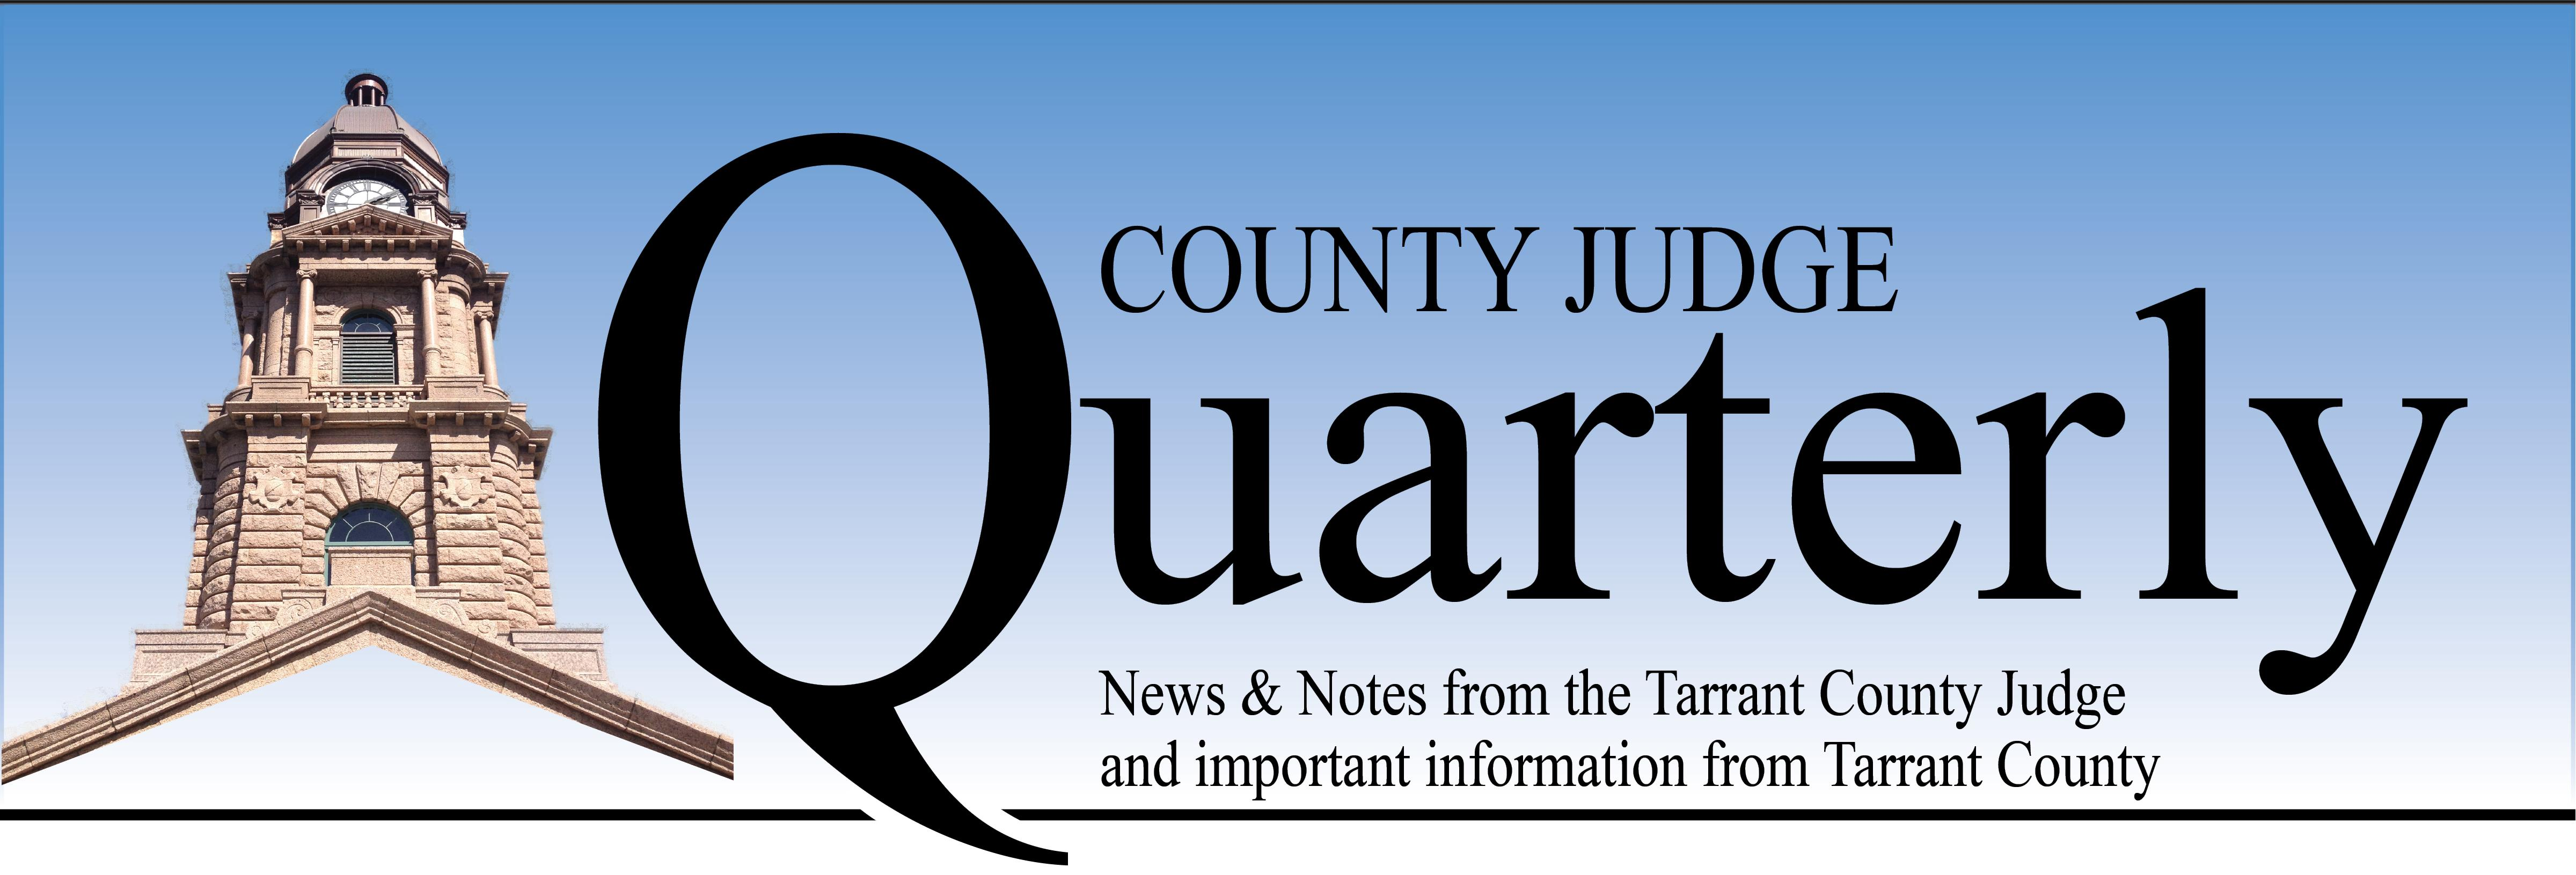 County Judge Quarterly Newsletter